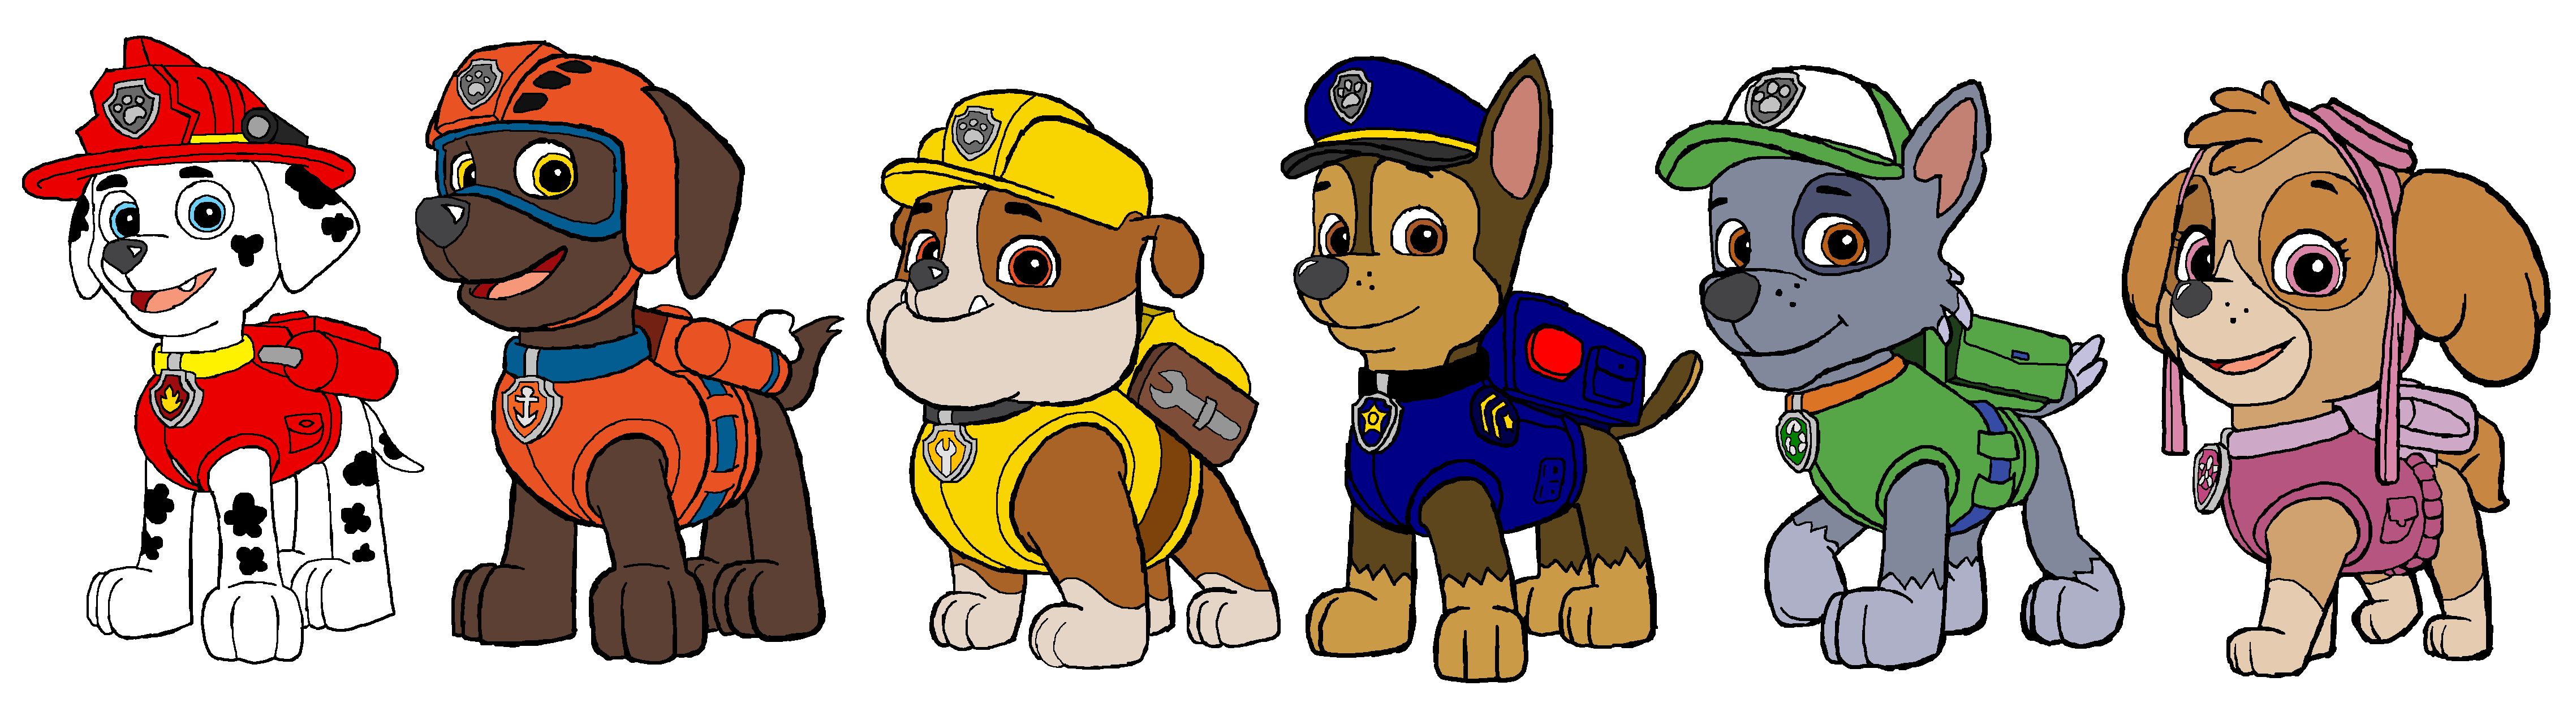 Paw patrol clipart without a background clipart stock paw patrol images paw patrol pups hd wallpaper and background ... clipart stock